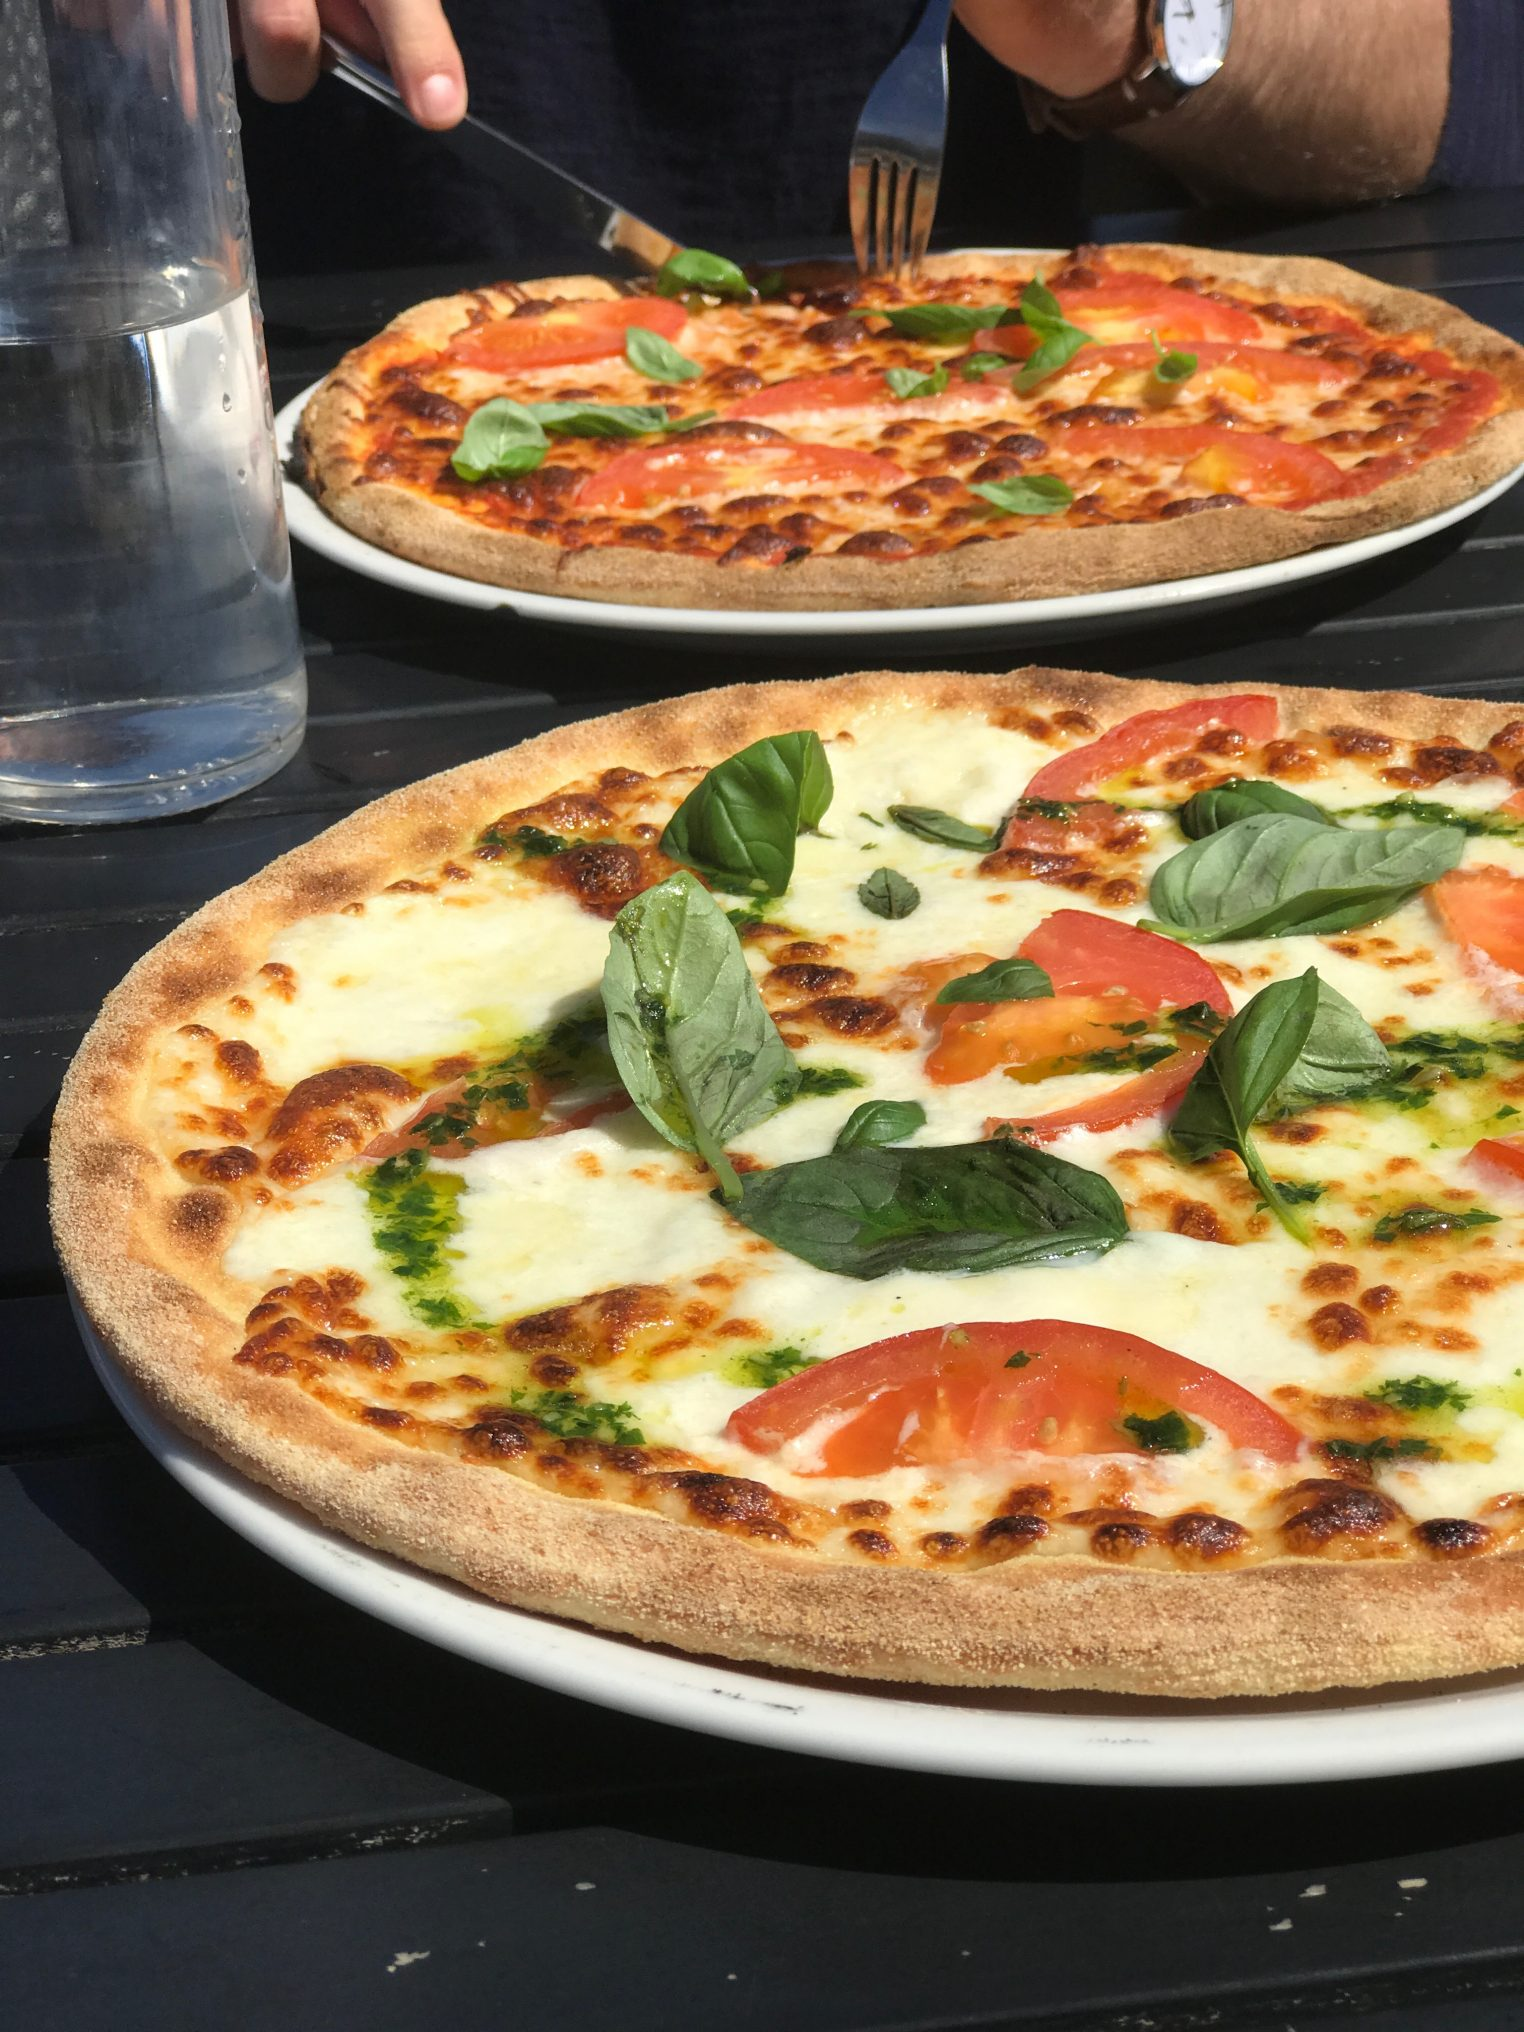 We stumbled upon this pizza joint in Tisvilde and wasn't sure what to expect. OMG. That basil drizzle ontop of the hot pizza was so delicious. Thank you Cafe Maya!